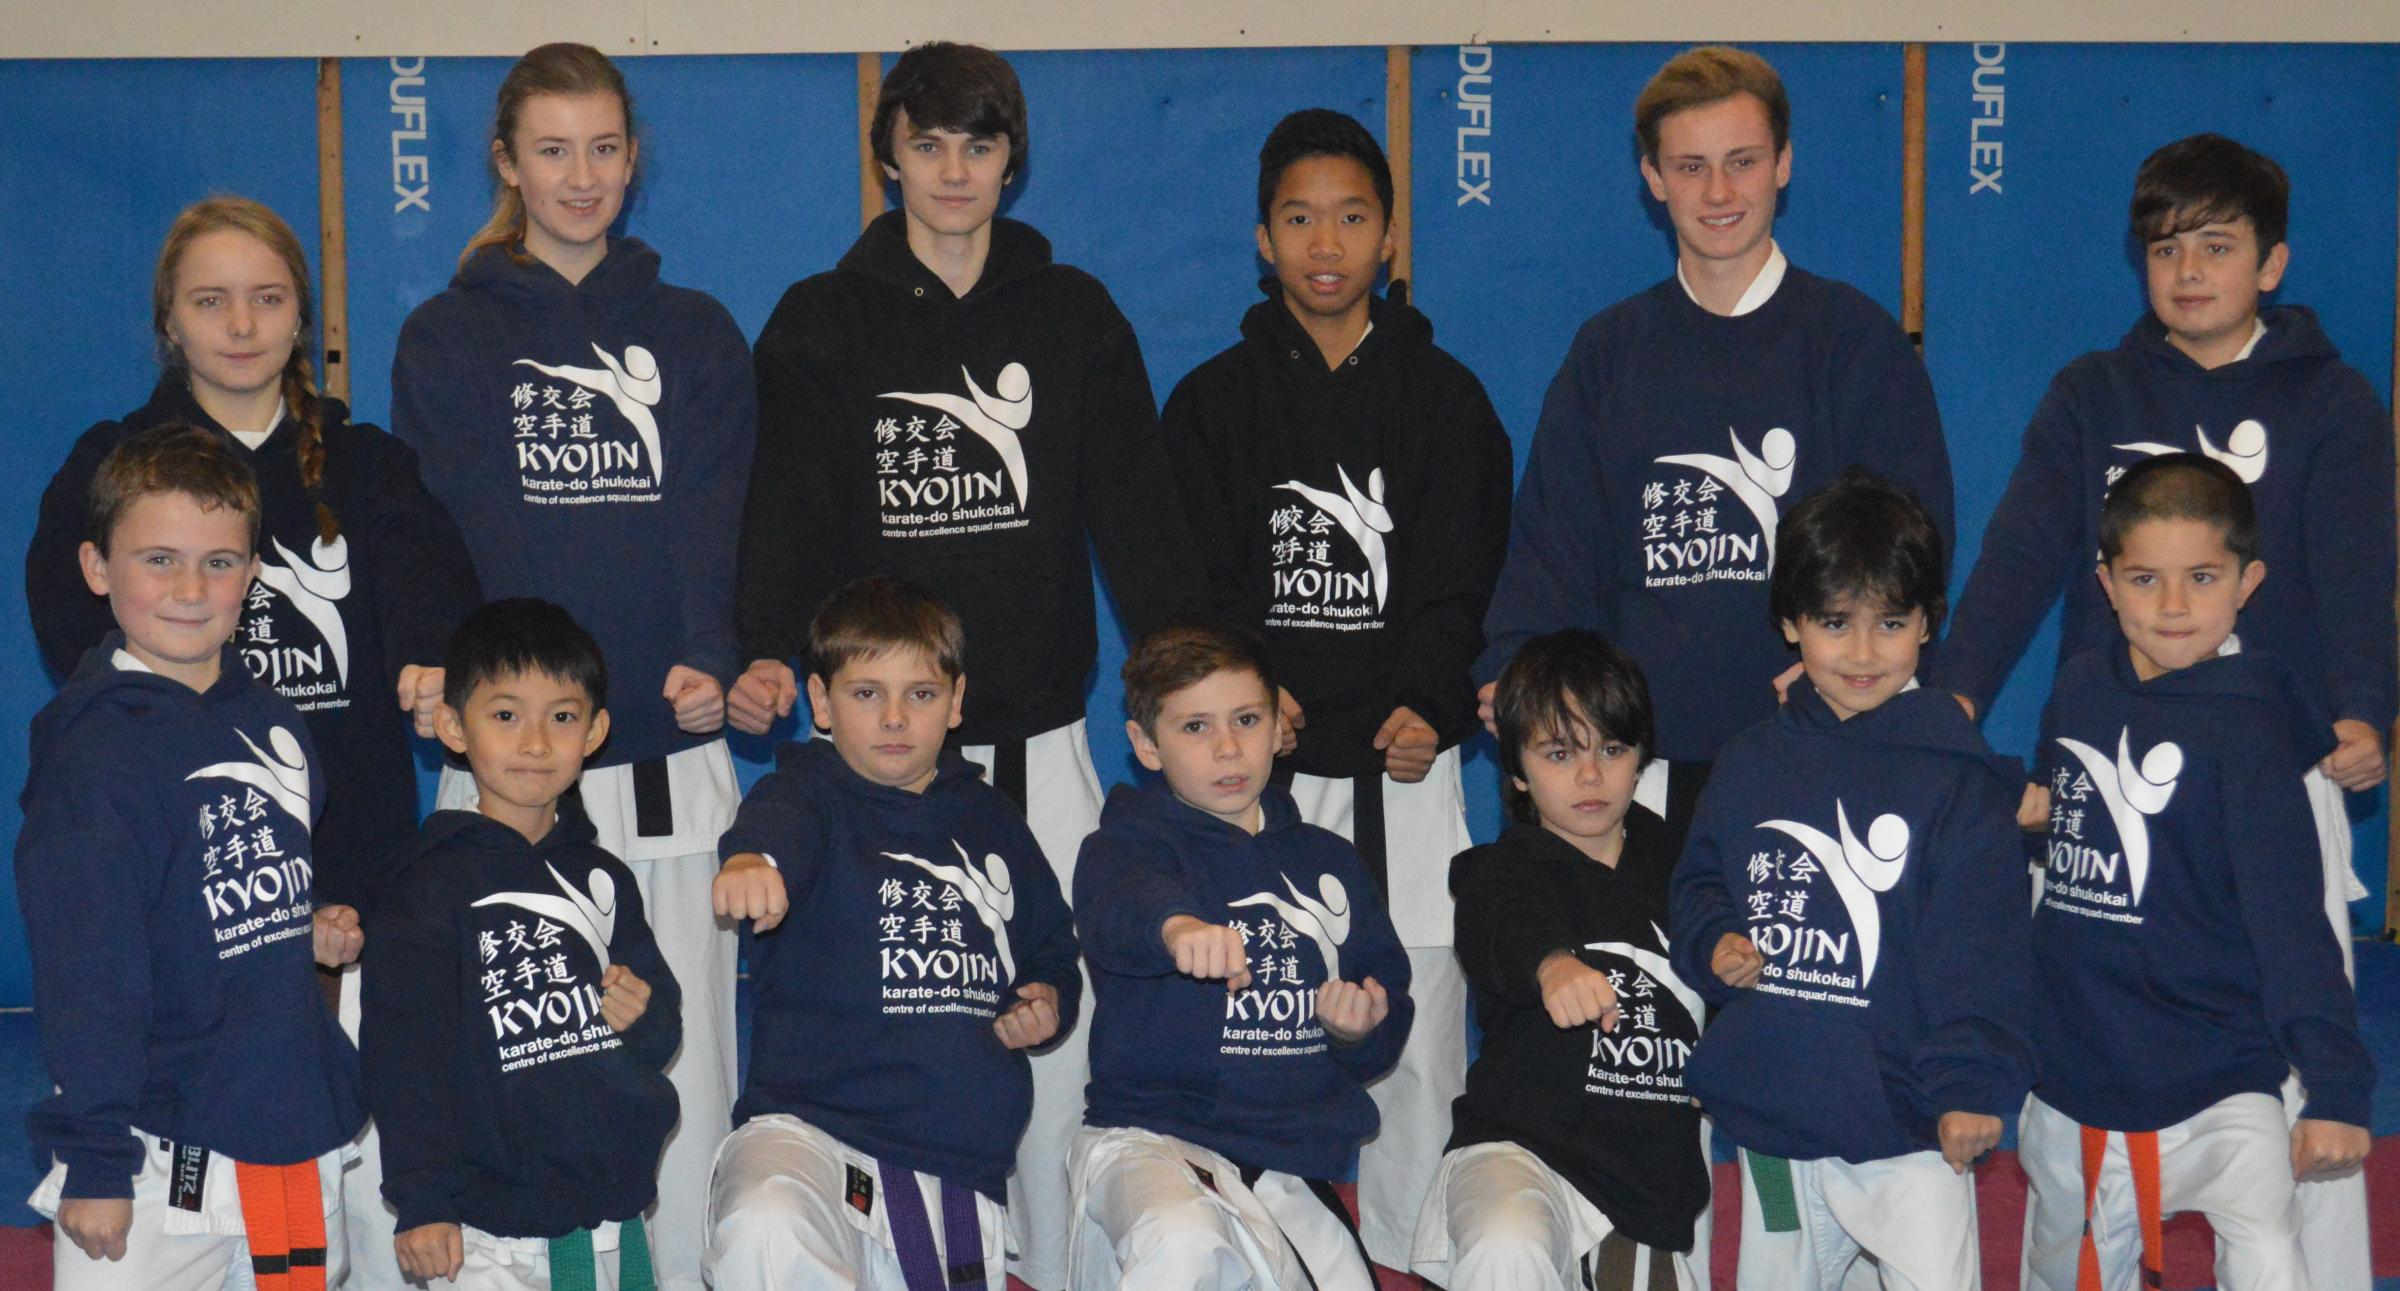 The Otley Karate Centre squad